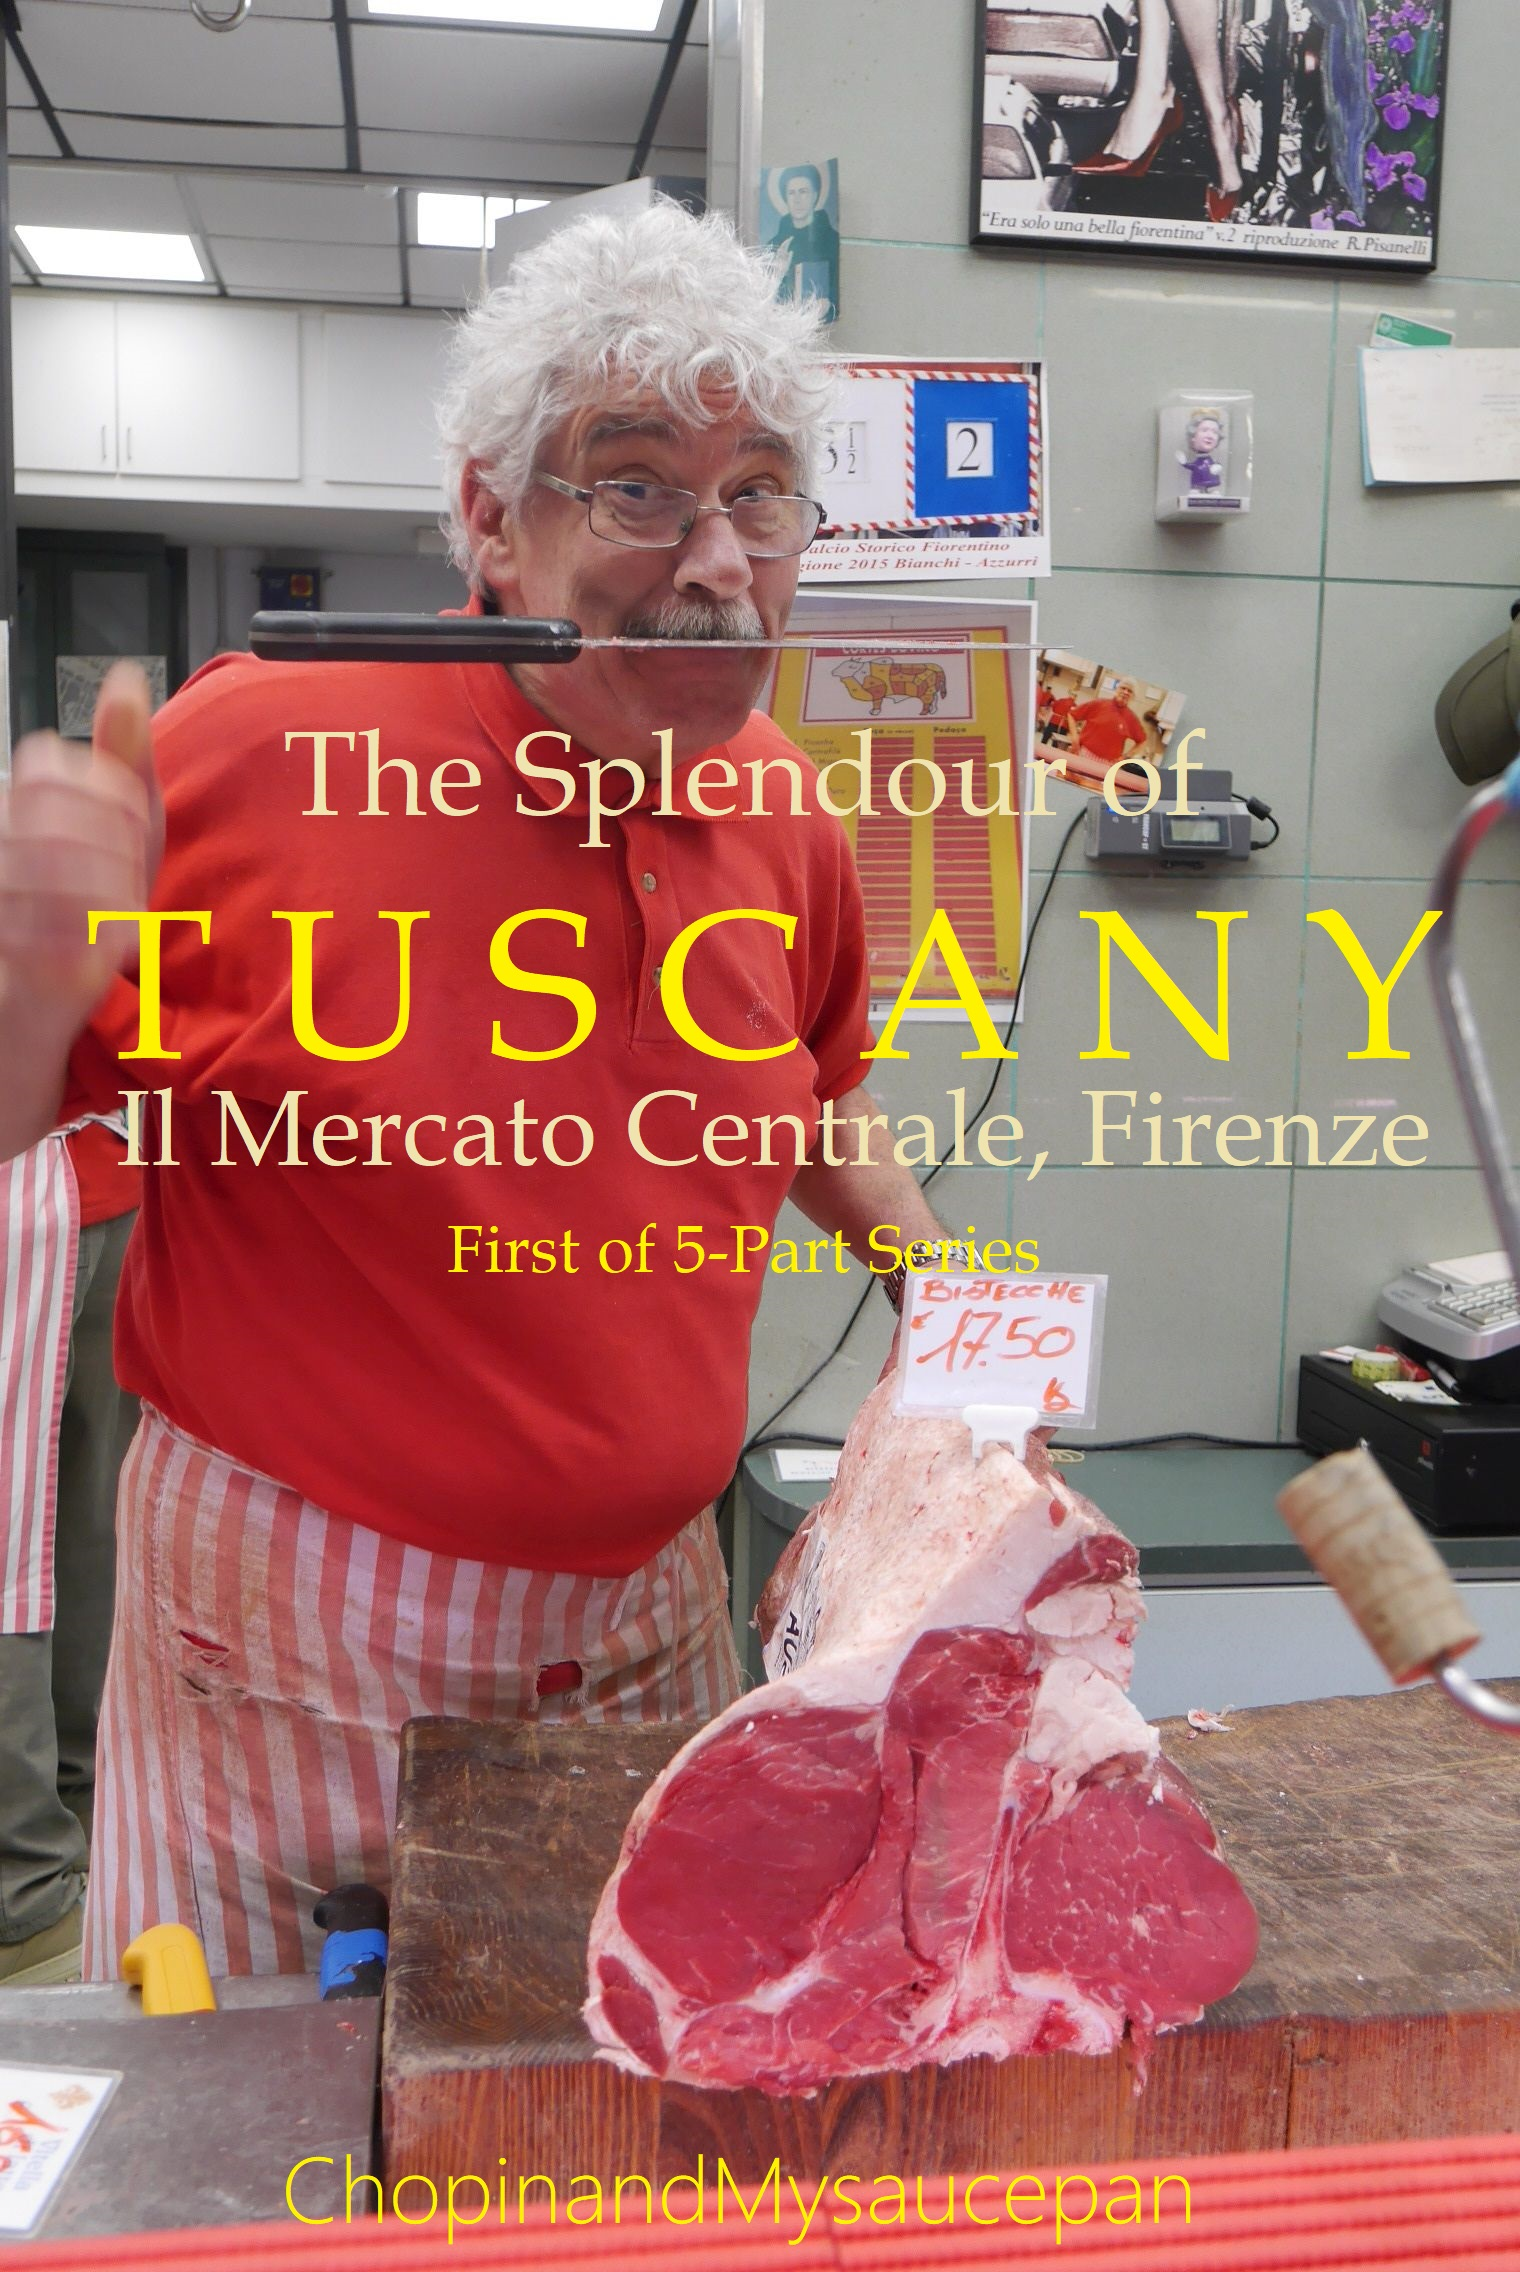 The Splendour of Tuscany - First of 5-Part Series